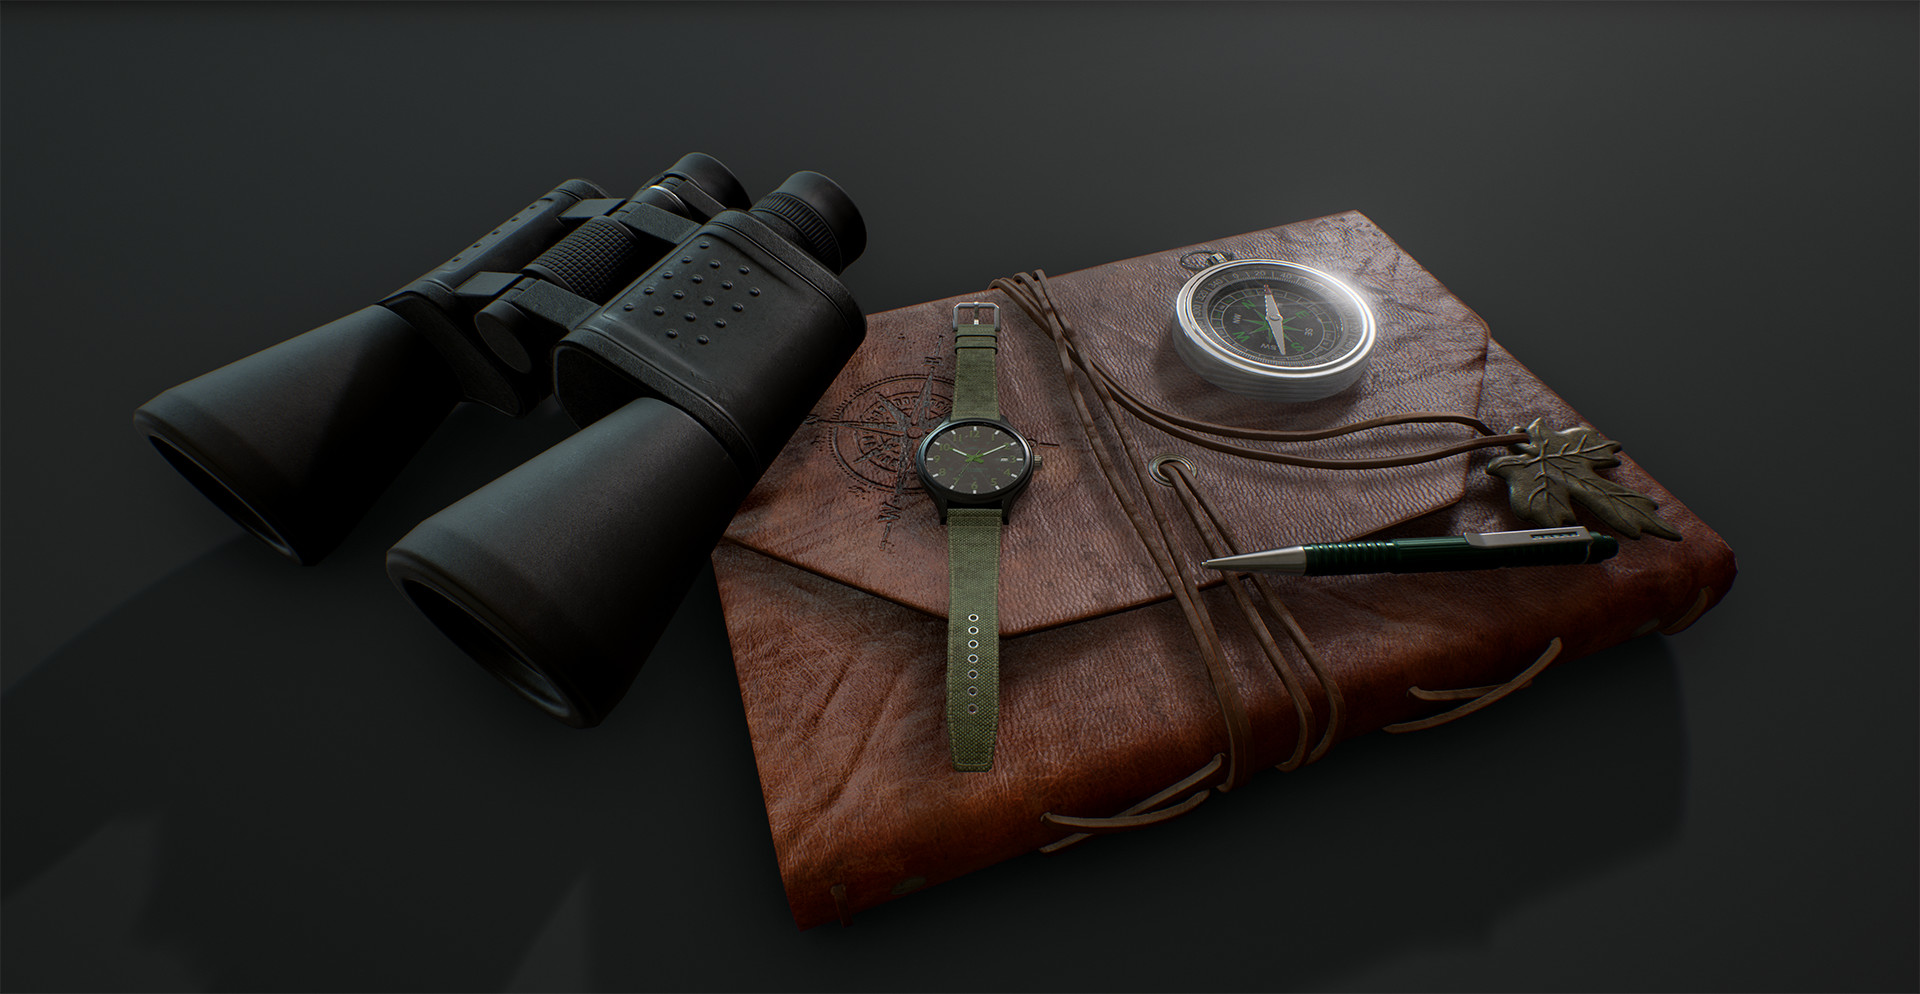 Edward hanley survivalpack03